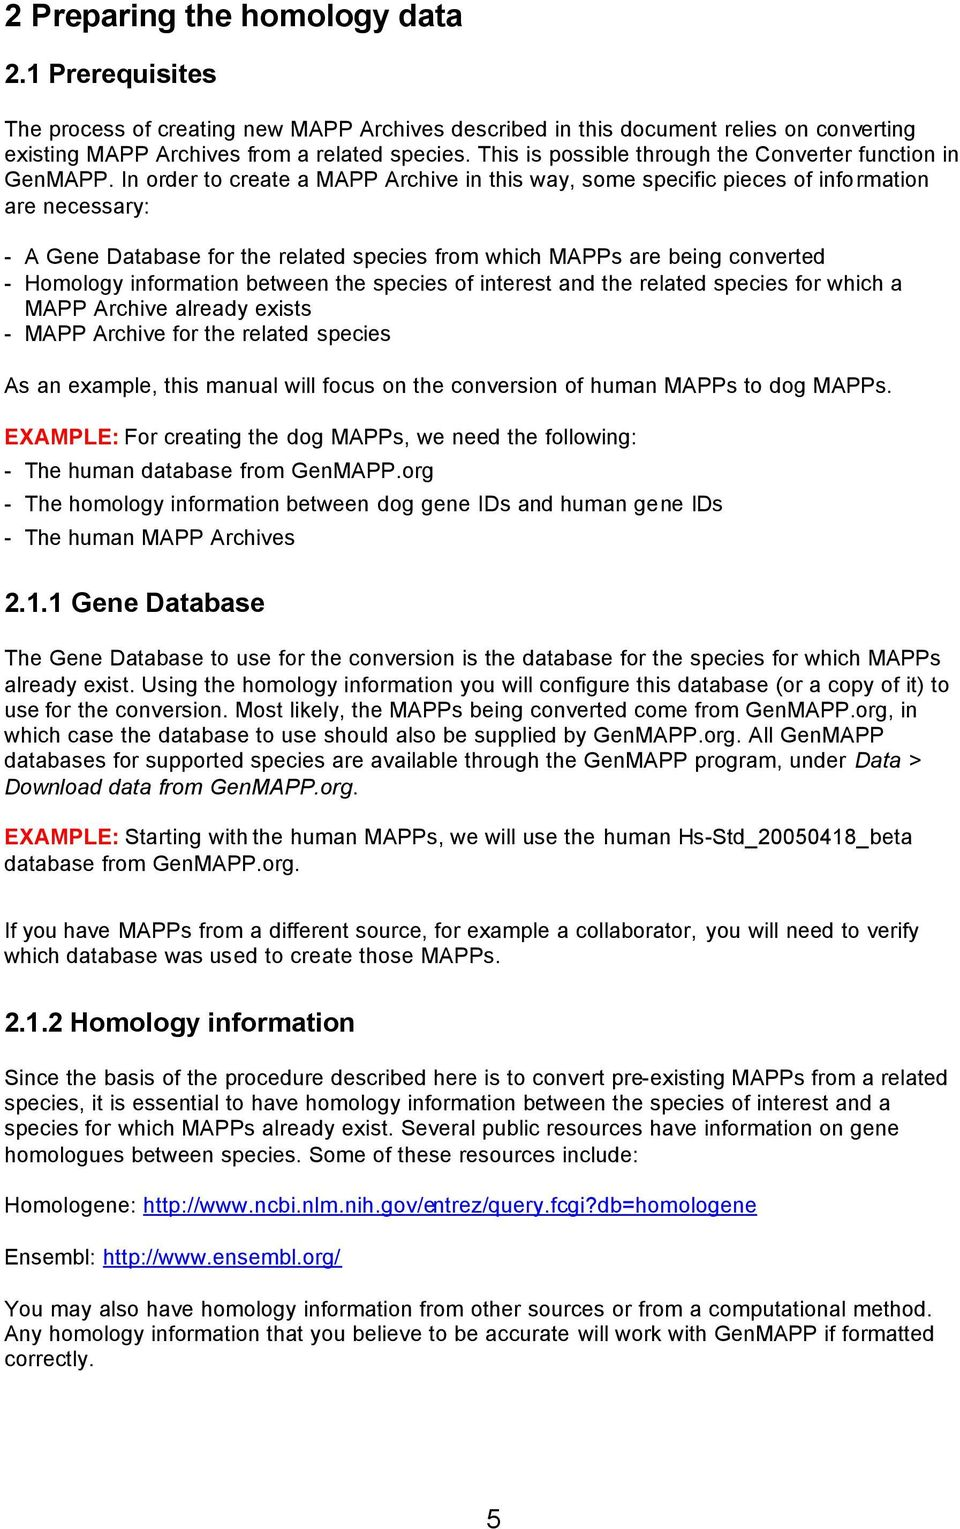 In order to create a MAPP Archive in this way, some specific pieces of information are necessary: - A Gene Database for the related species from which MAPPs are being converted - Homology information